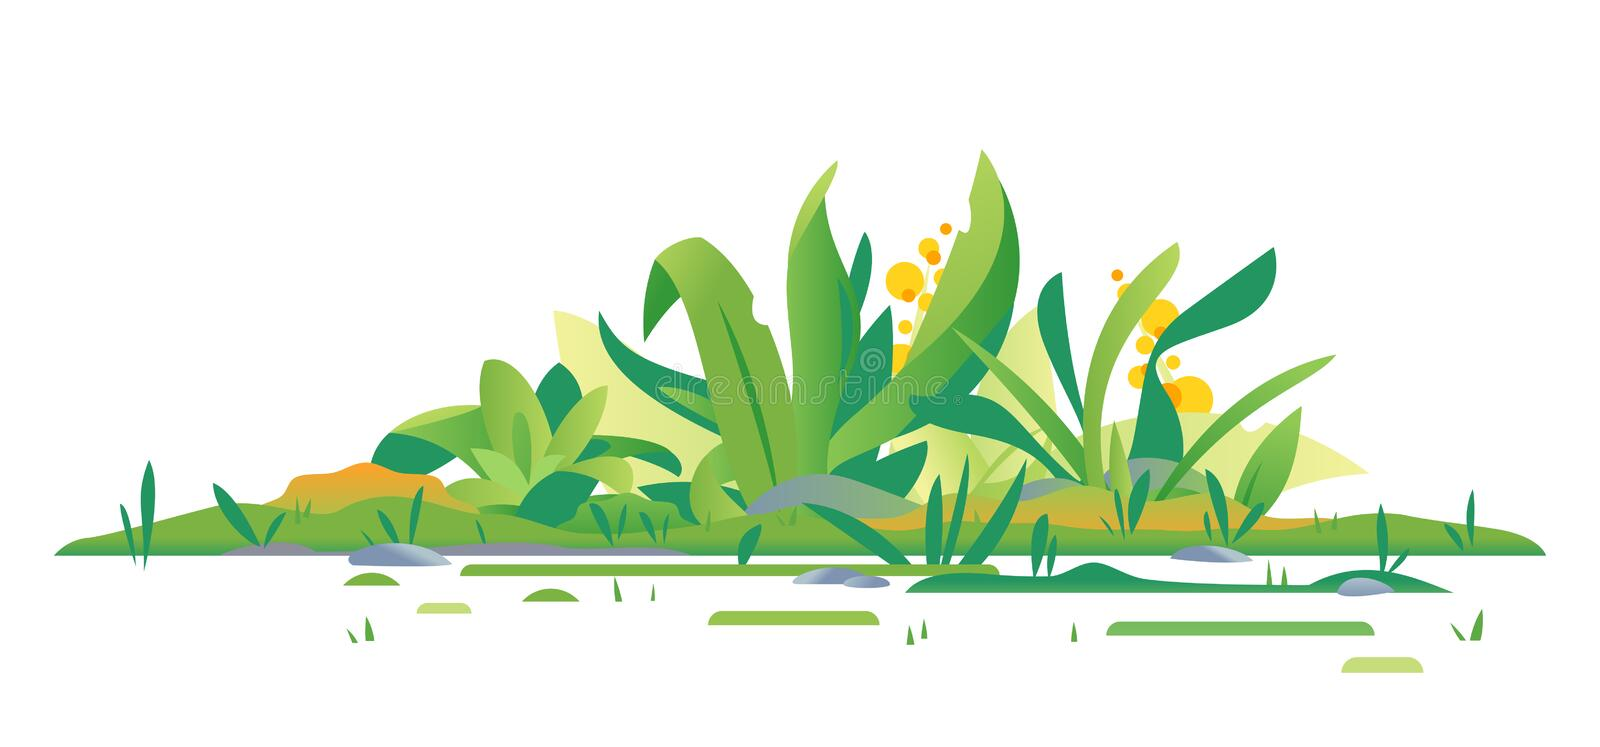 Jungle plants green composition isolated. Different exotic green plants on ground with grass and stones, composition of plants on the sunny lawn isolated vector illustration